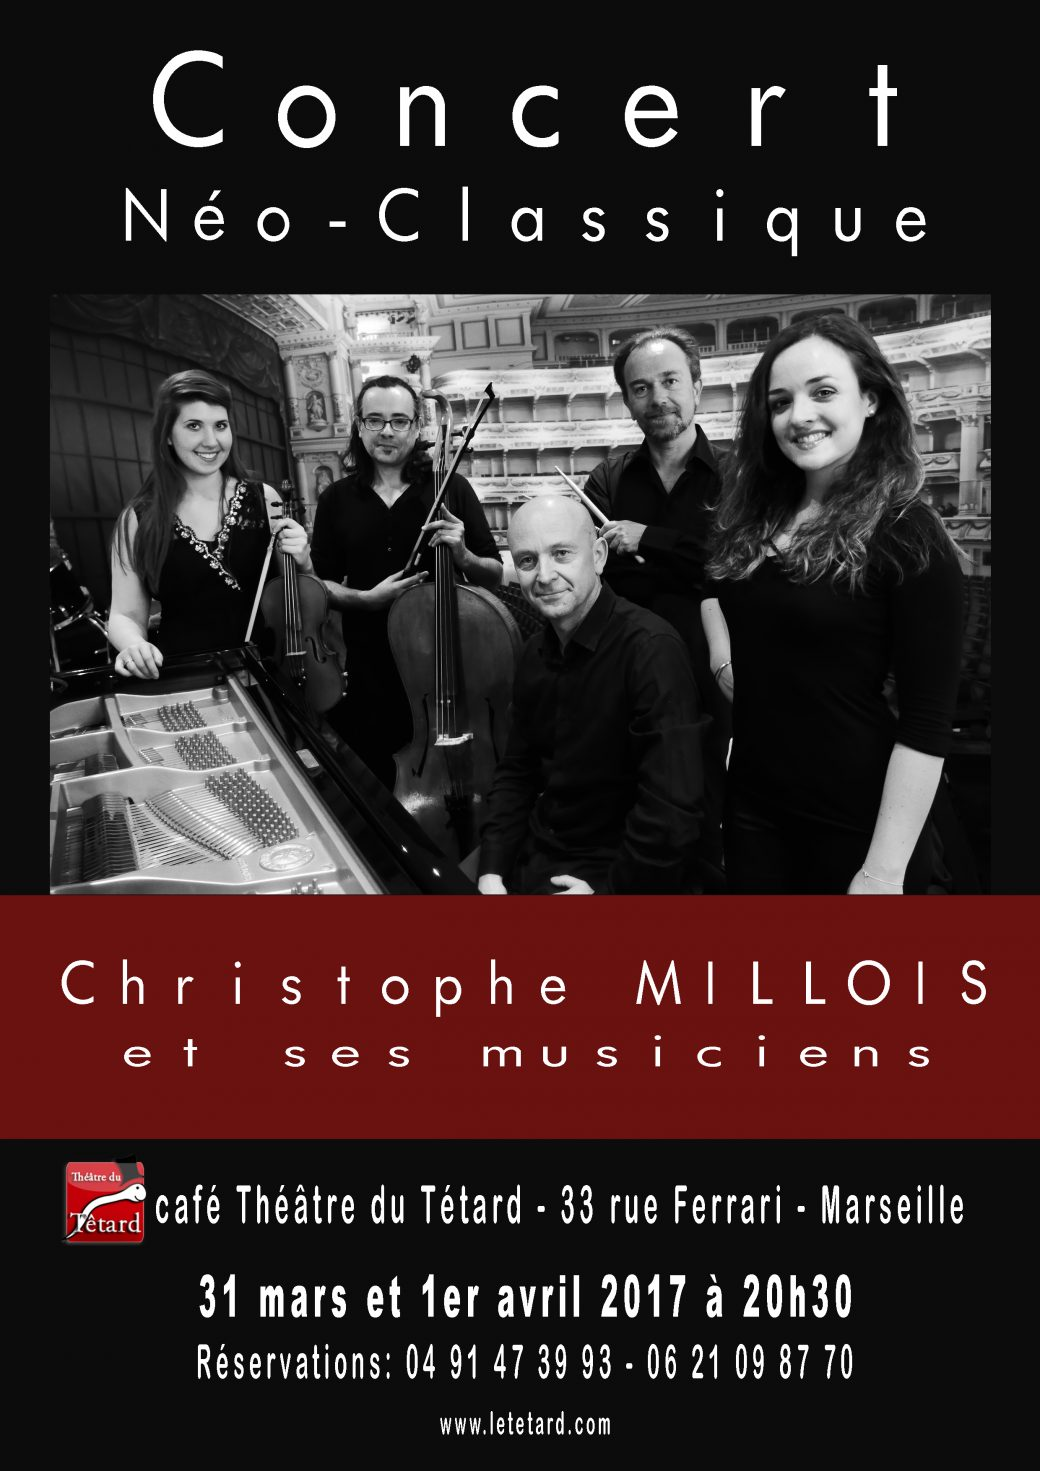 Christophe Millois, piano